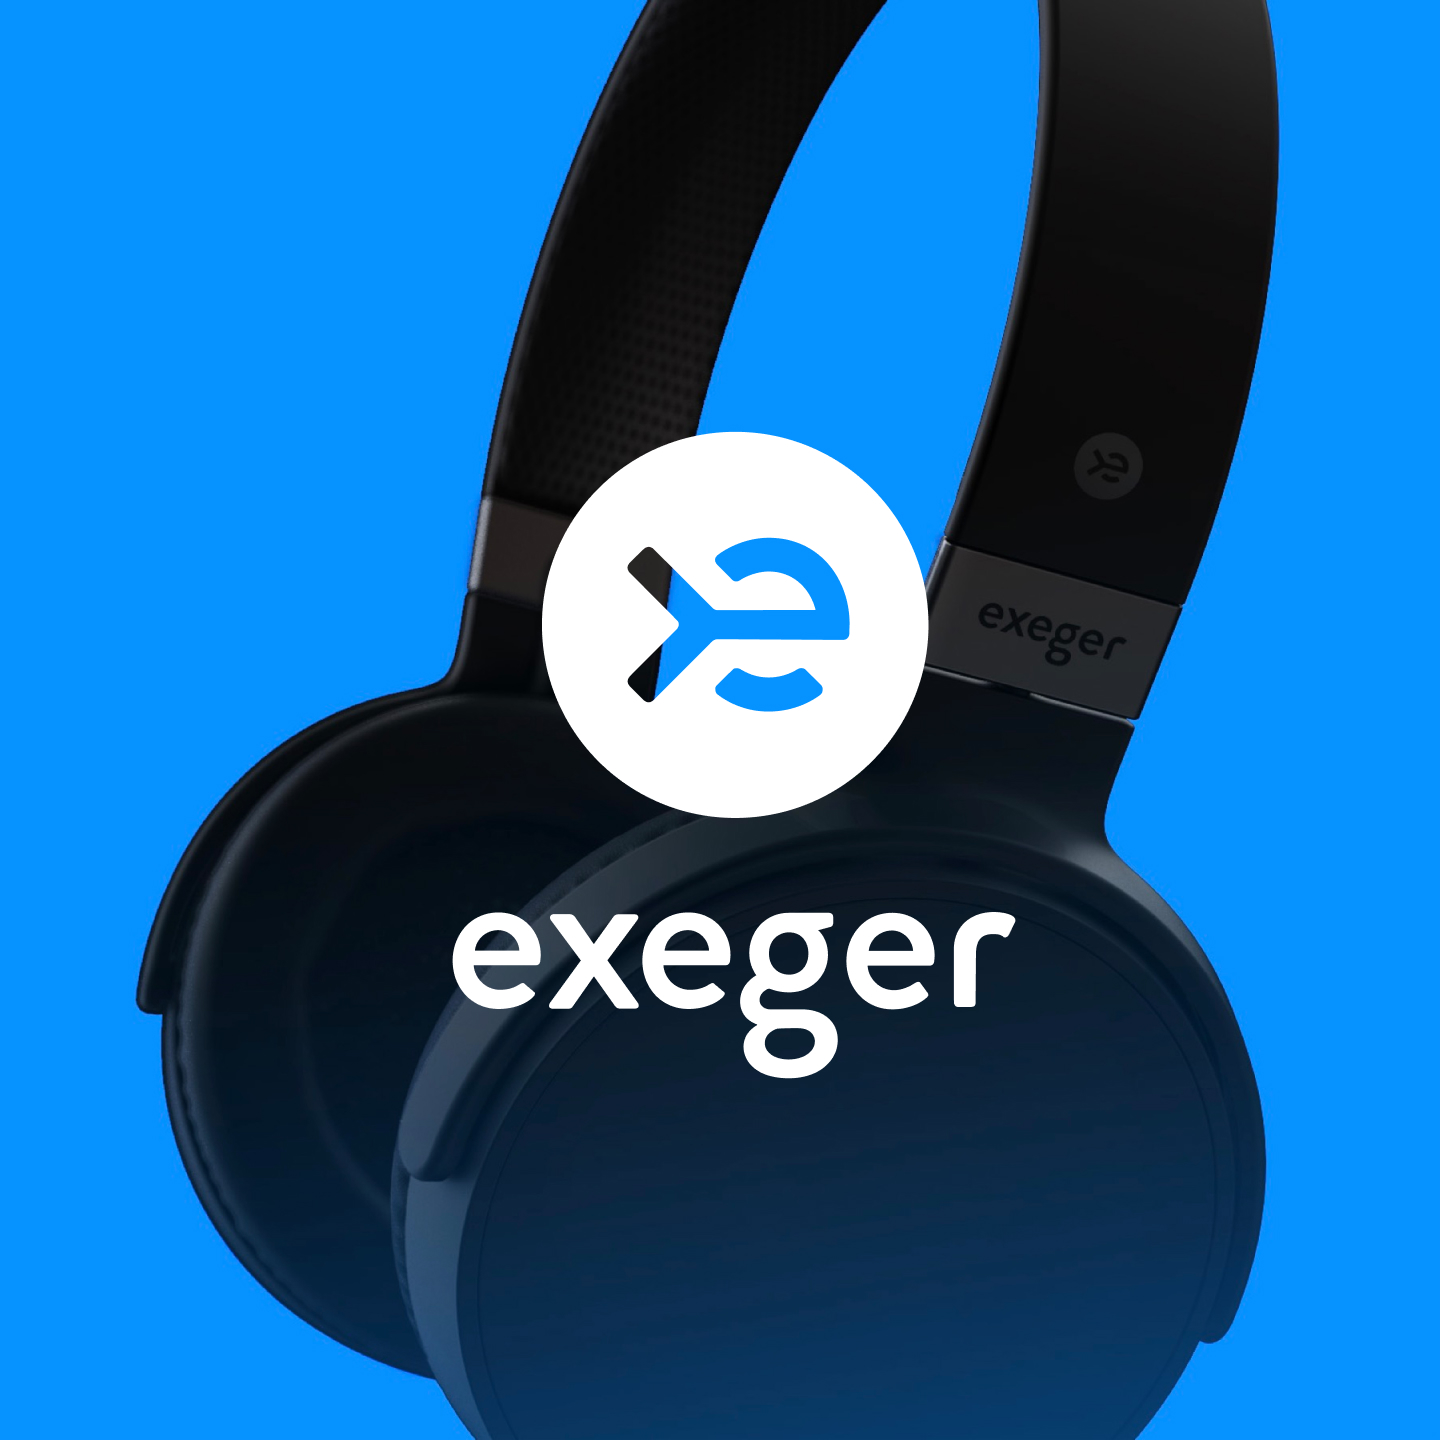 Exeger: Visual Identity